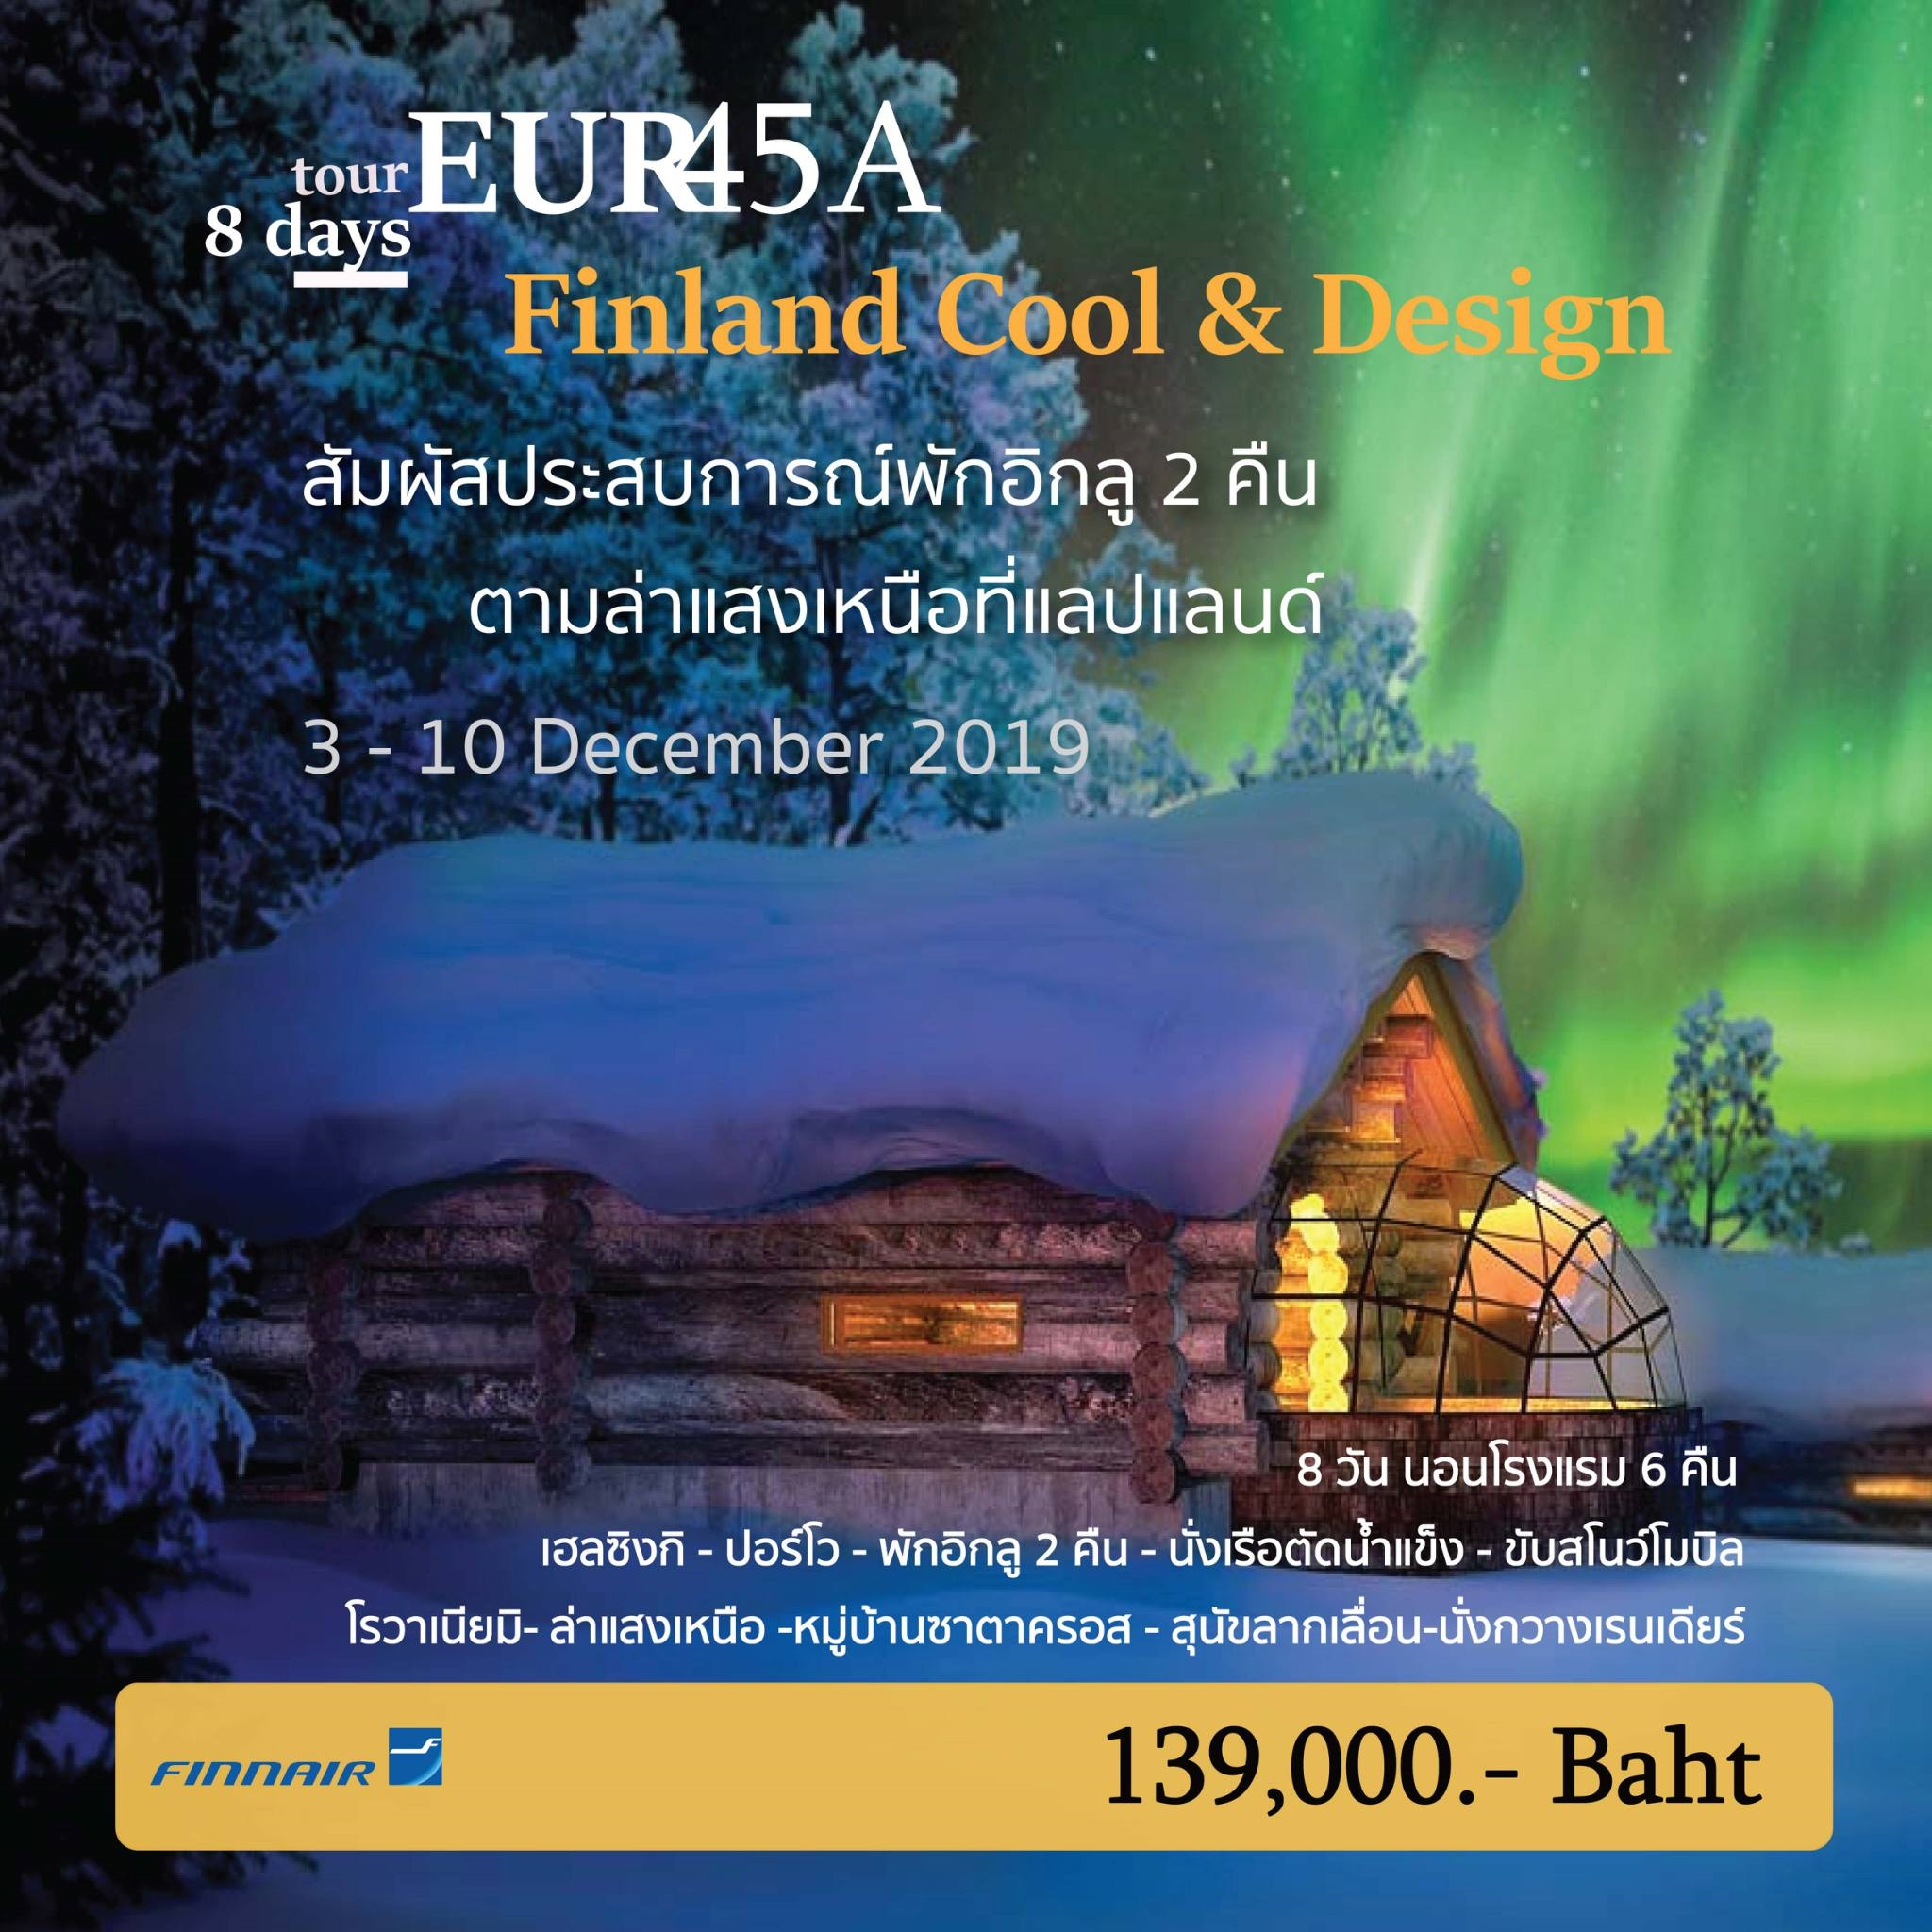 ทัวร์ยุโรป-FINLAND-COOL-&-DESIGN-GLASS-IGLOOS-8D-6N-(3-10-Dec19)(EUR45A)